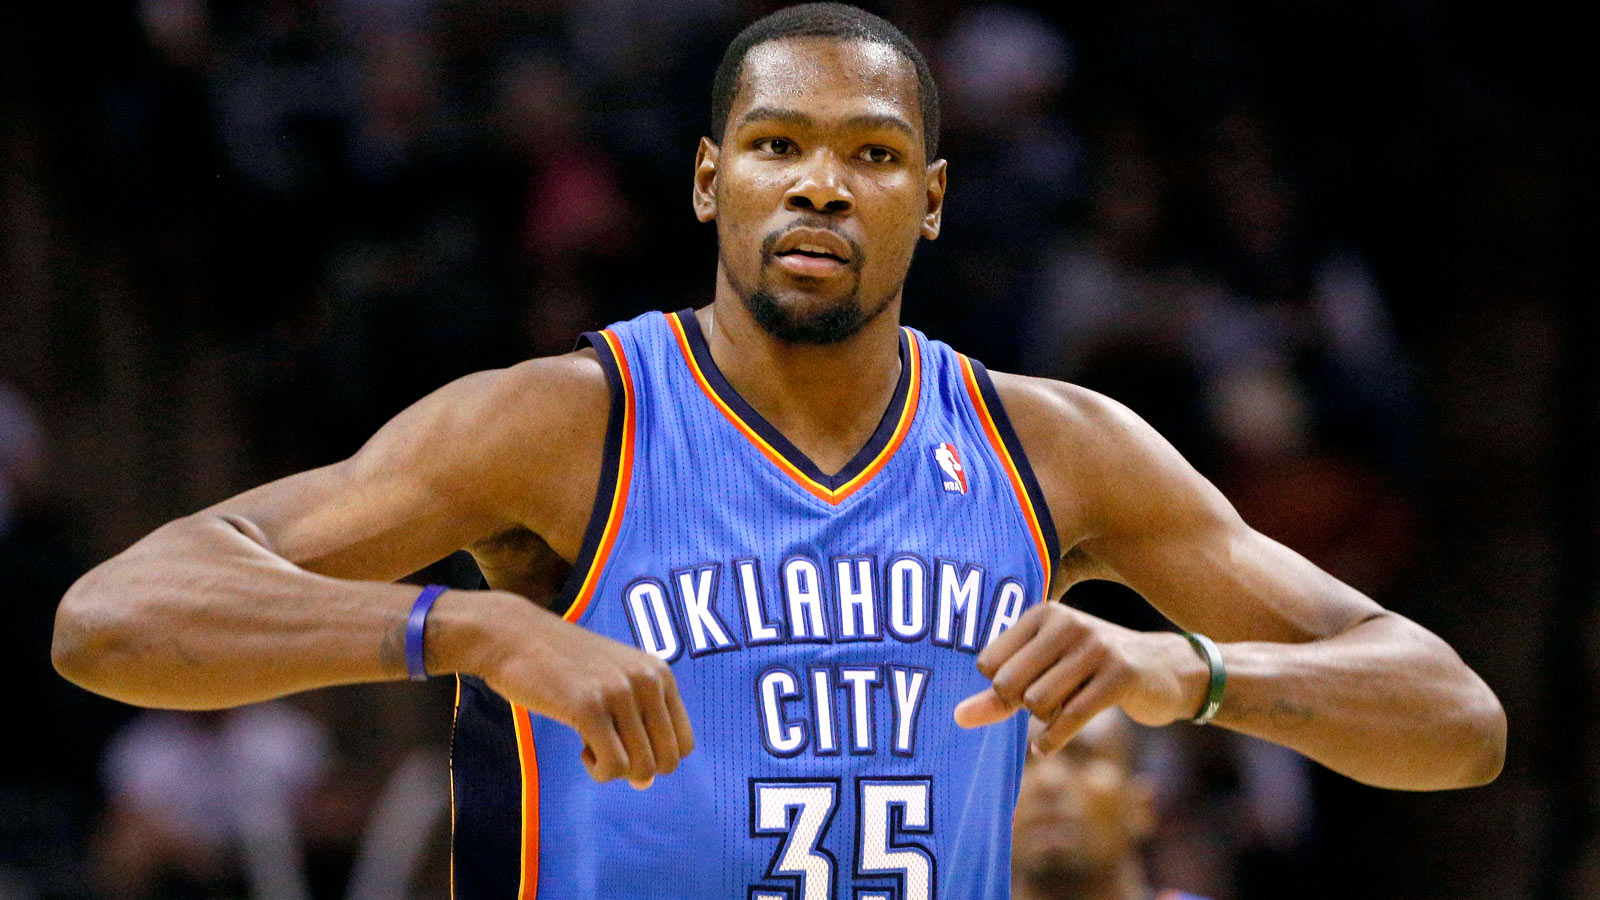 NBA: Oklahoma City Thunder at San Antonio Spurs